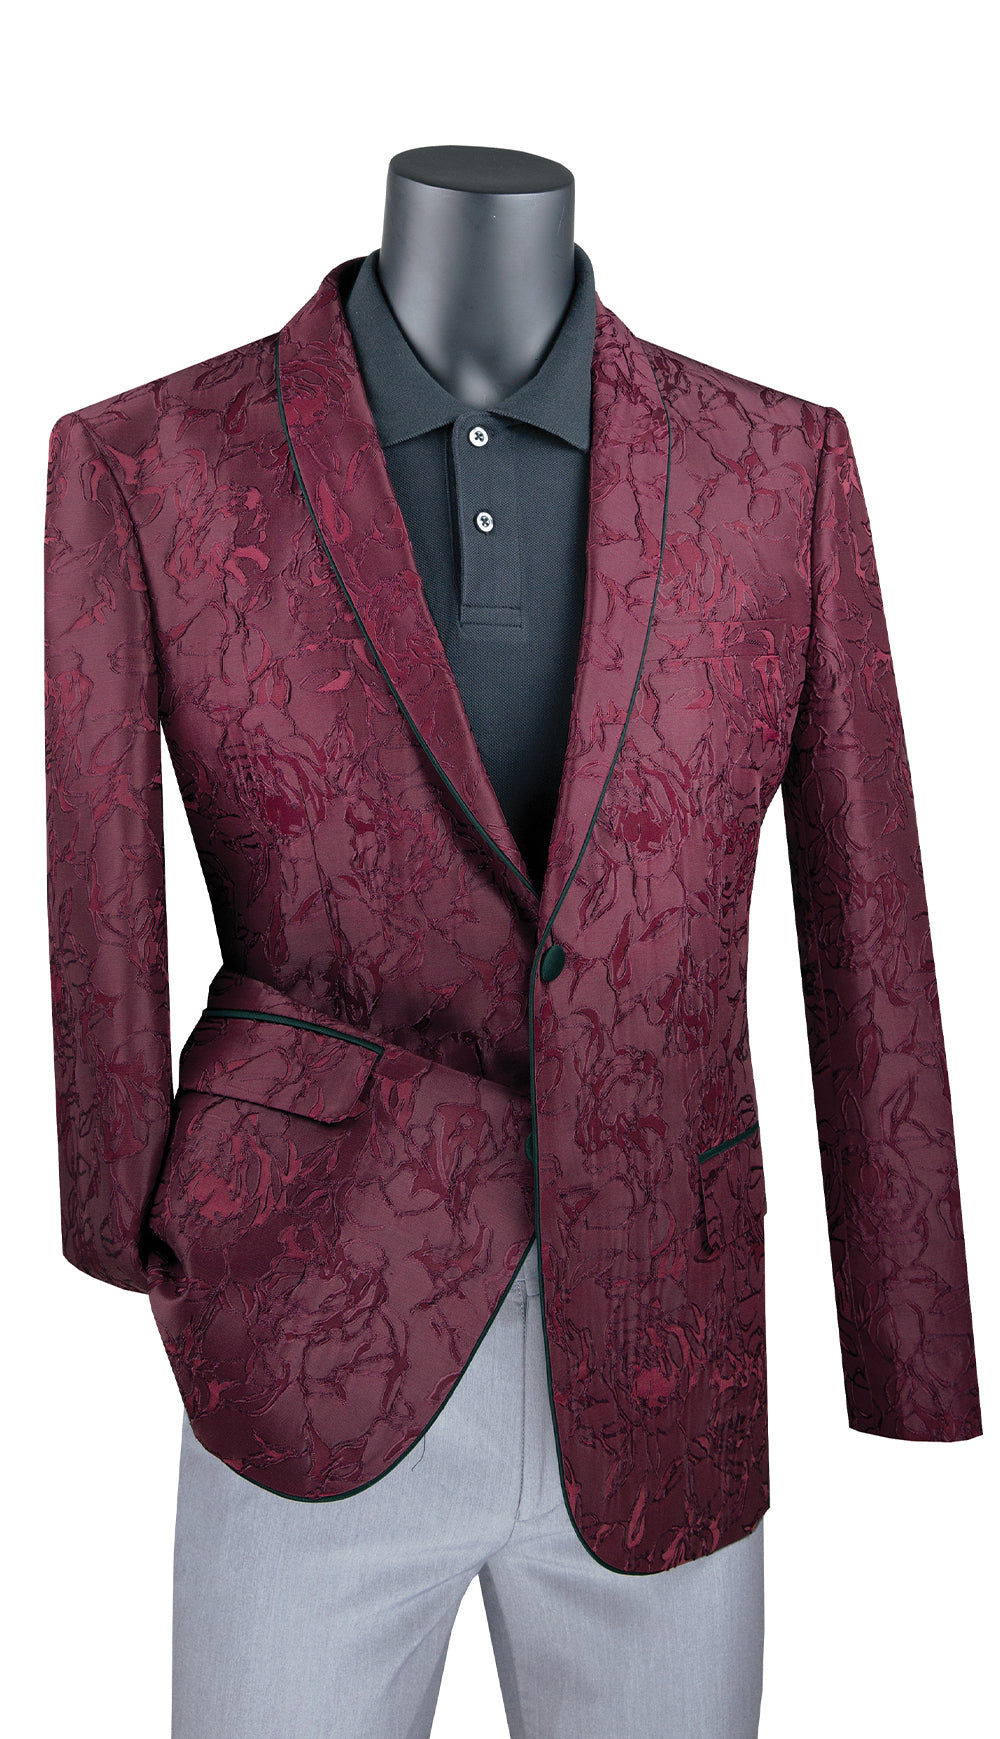 Vinci Sport Jacket BSF-10-Burgundy - Church Suits For Less